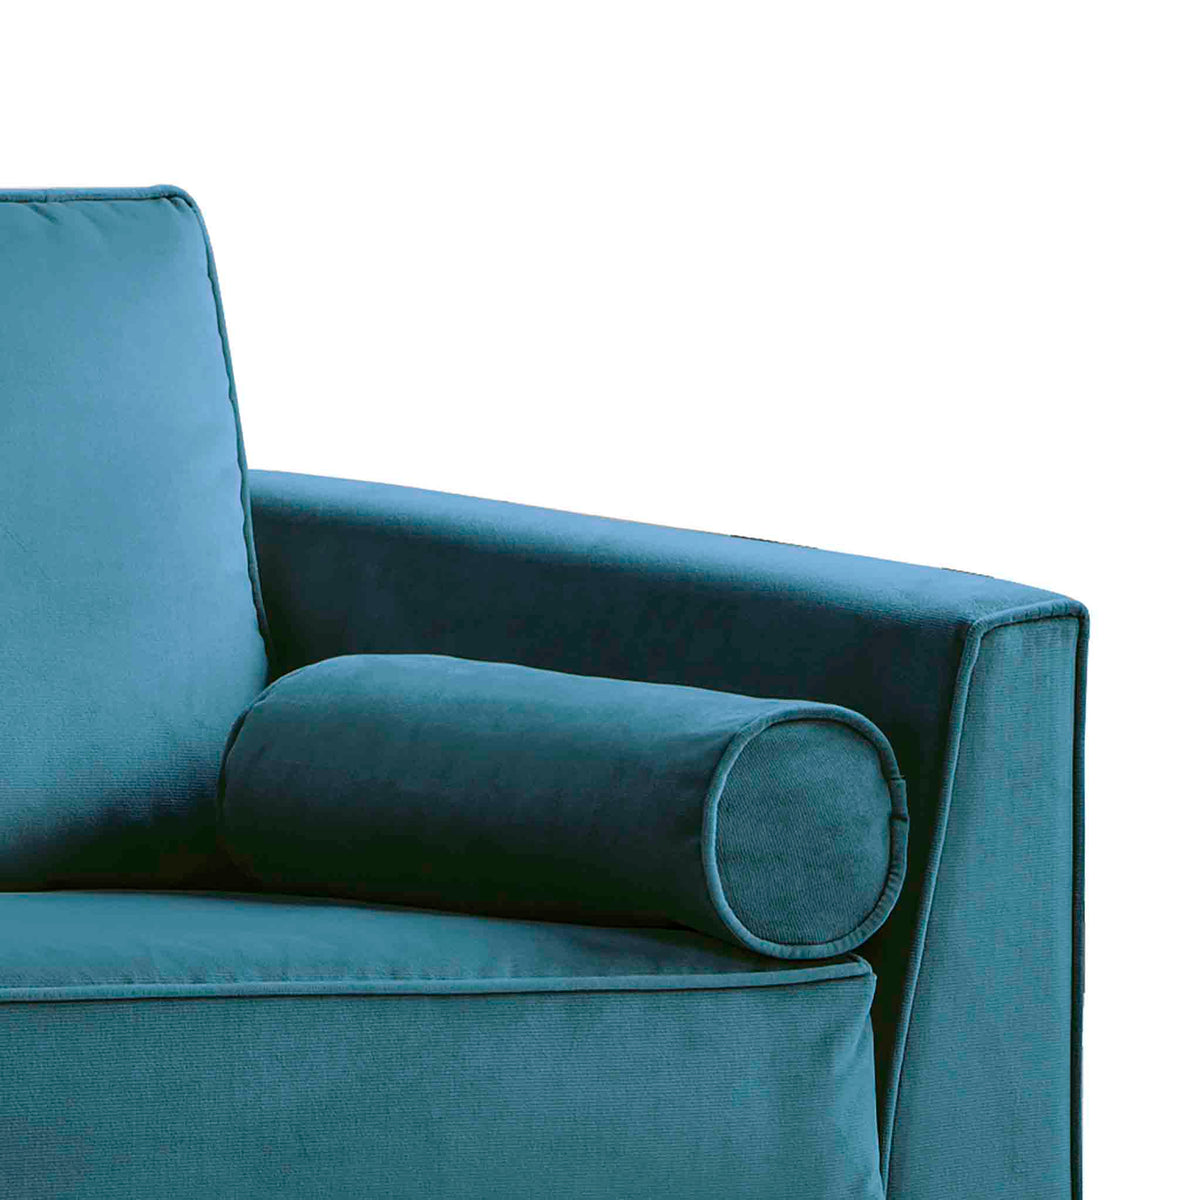 Ikon Peacock 3 Seater Sofa - Close up of arm rest